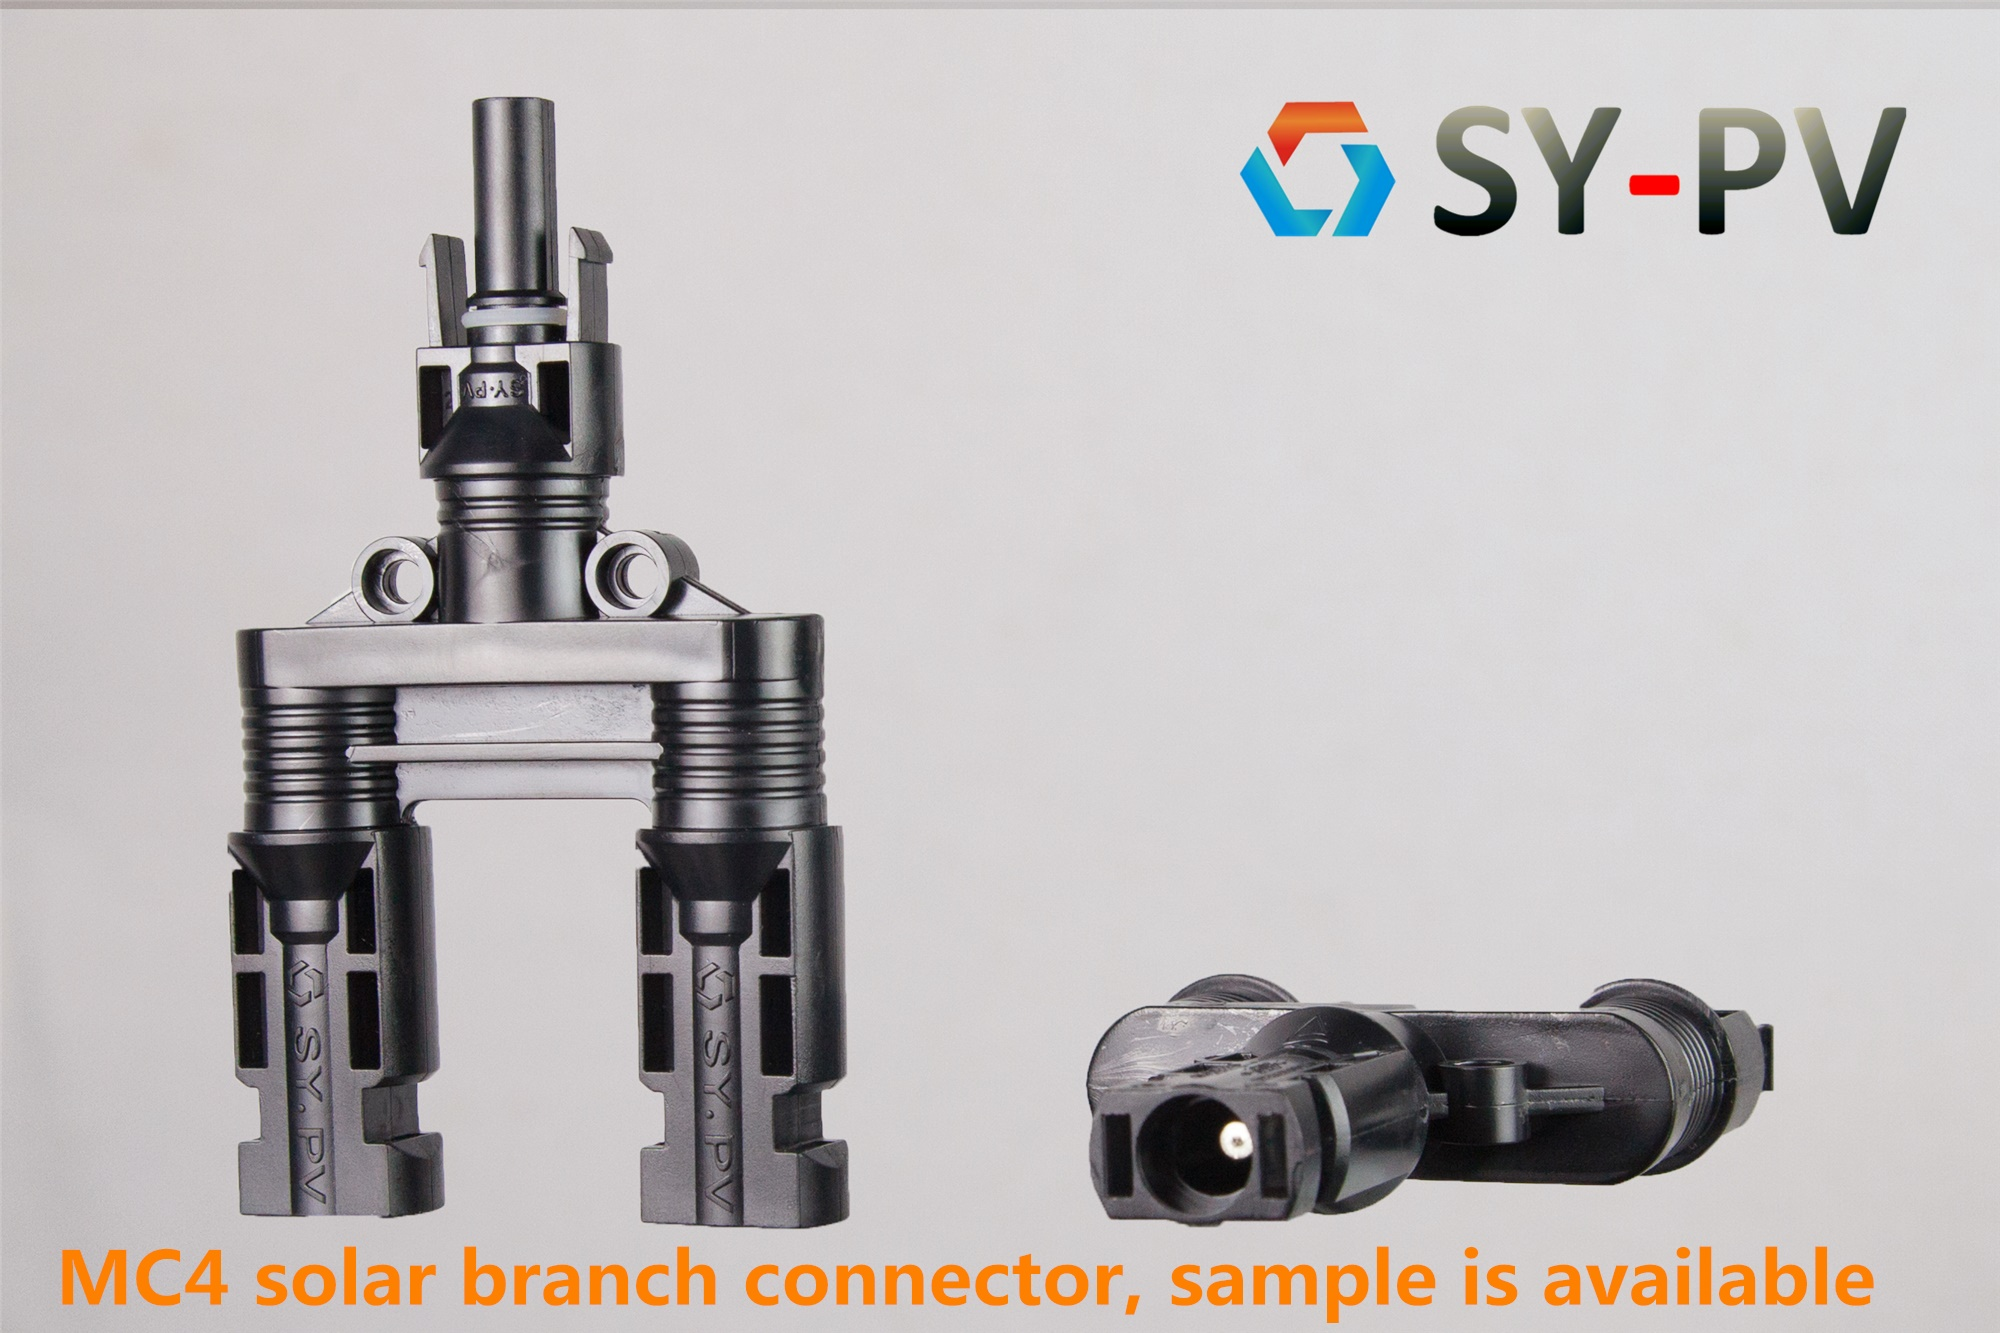 T MC4 compatible Y branch PV conector box branch connector solar manufacturer in China Y branch connector solar connector manufacturer mc4 manufacturerFast assembly solar branch connector free sample MC4 manufacturer